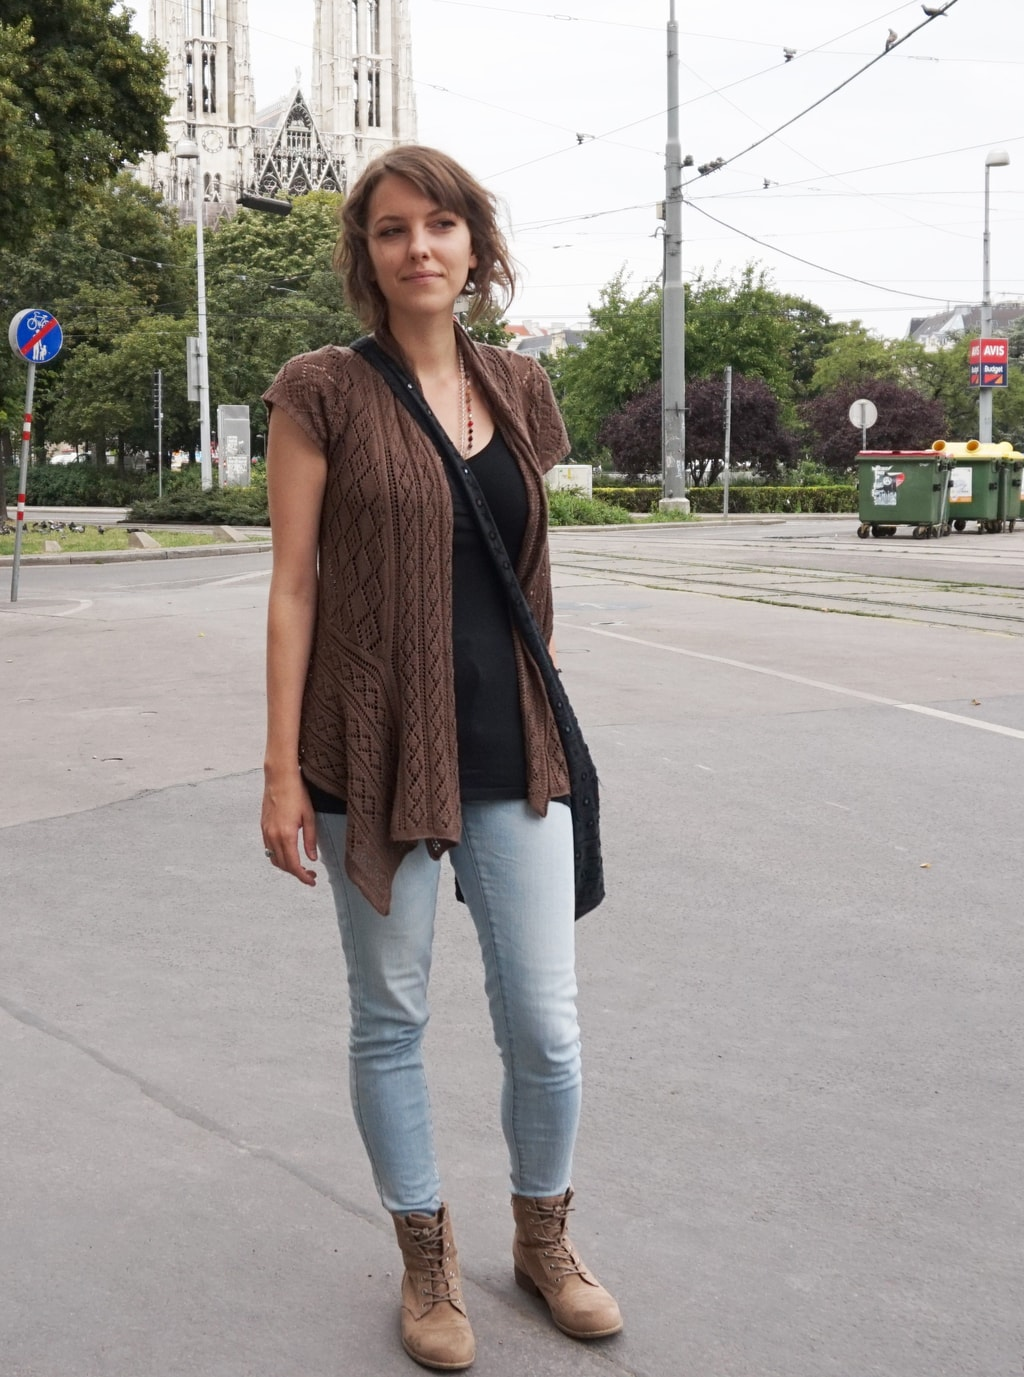 University of Vienna street style: Student wearing a black top, light wash jeans, and a brown cardigan and boots